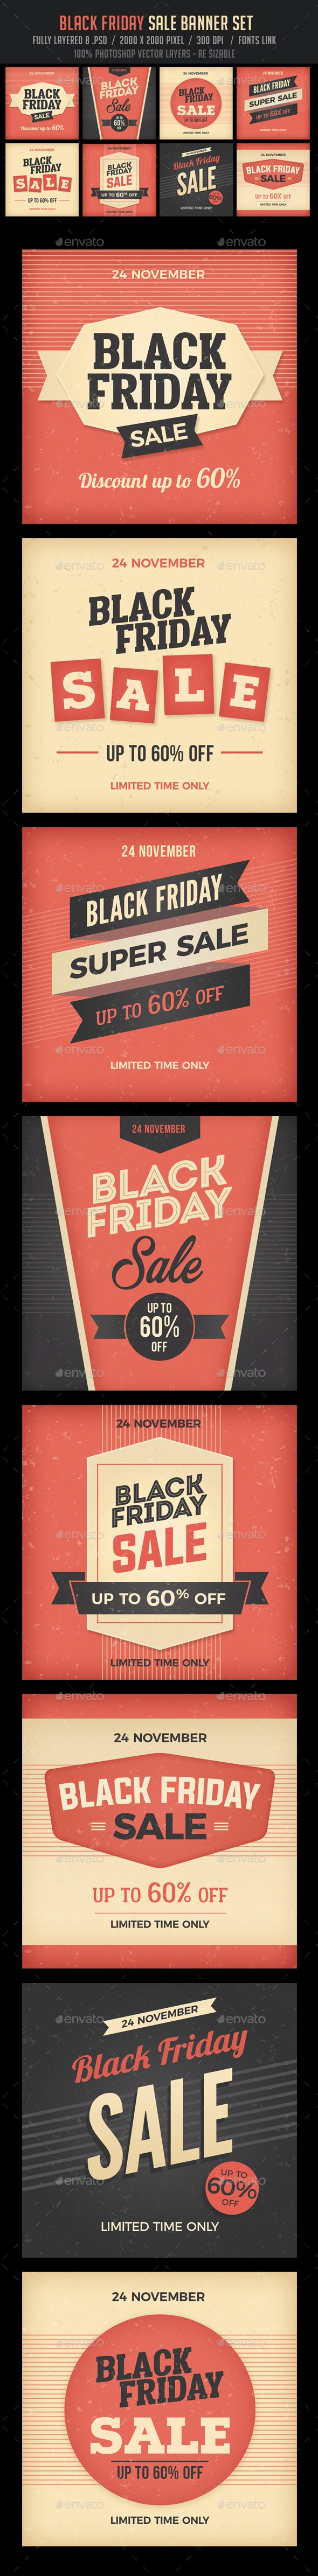 Black Friday Banners Set - Banners & Ads Web Elements